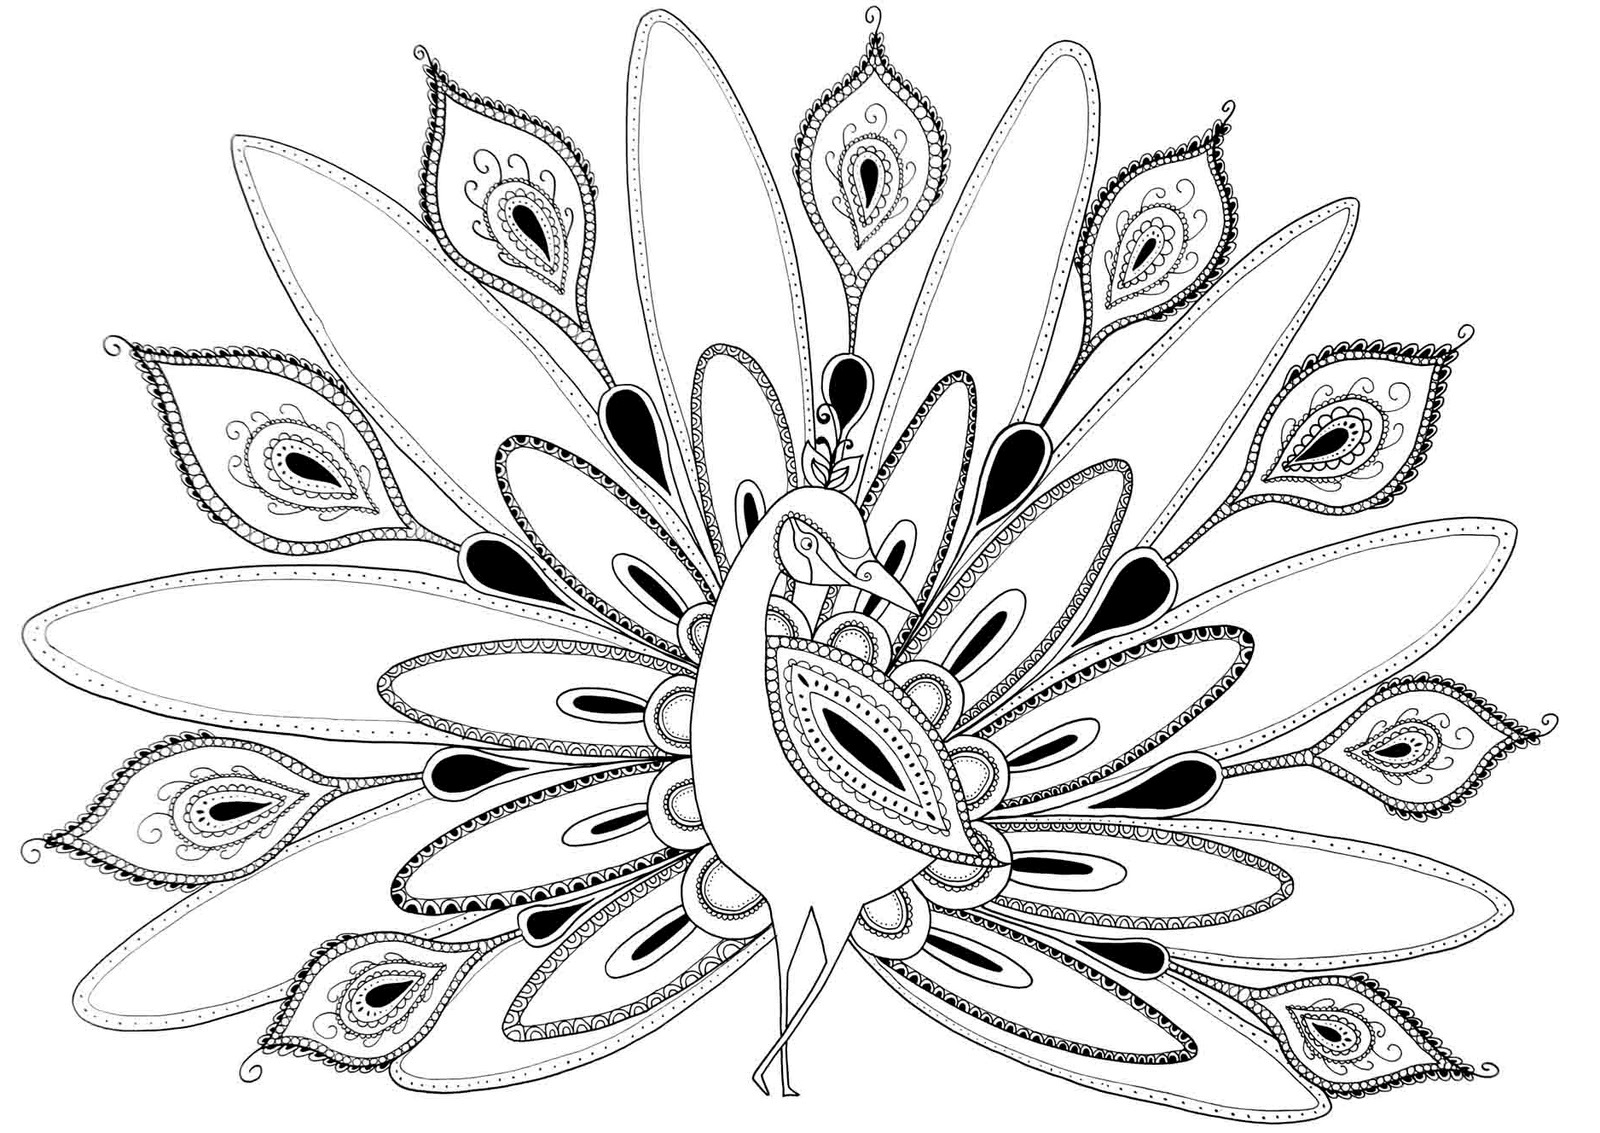 peacock coloring images free printable peacock coloring pages for kids images coloring peacock